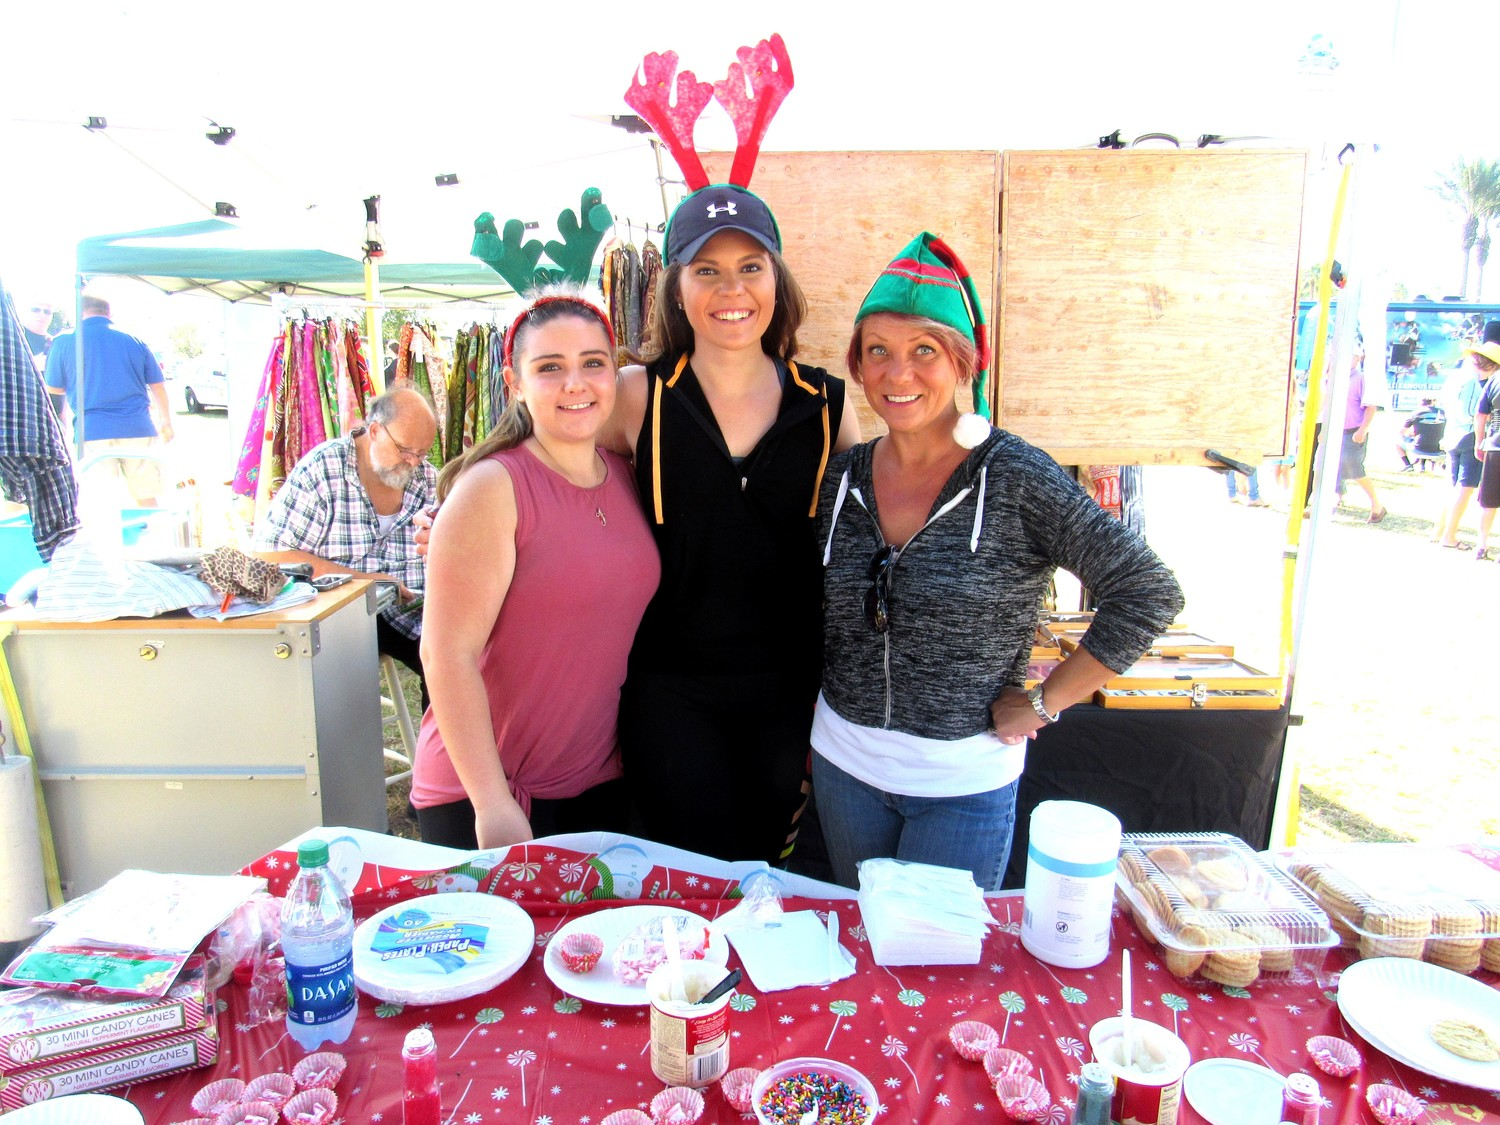 Destiny Drouillard, Lindsay Bryant and Leigh Norton man the Christmas cookie-decorating table at the Crosswater Community Church booth.